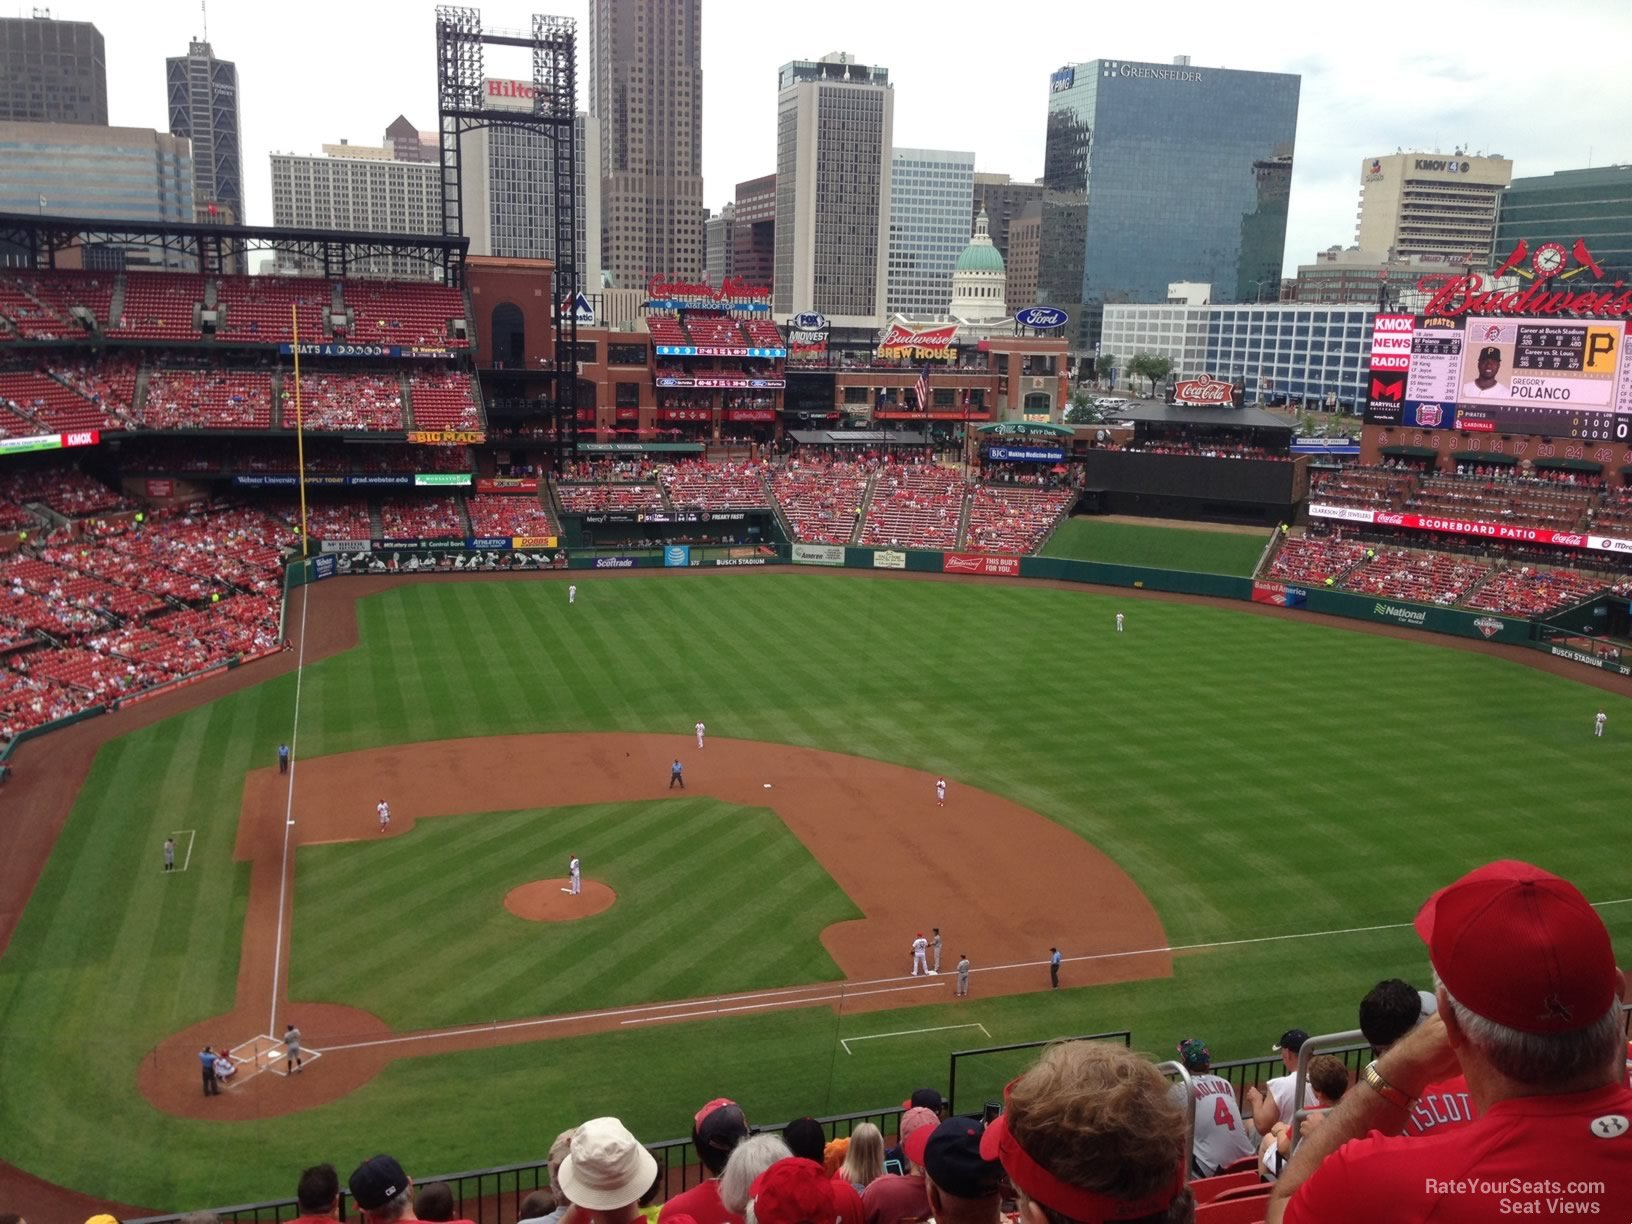 Busch Stadium Section 346 - RateYourSeats.com